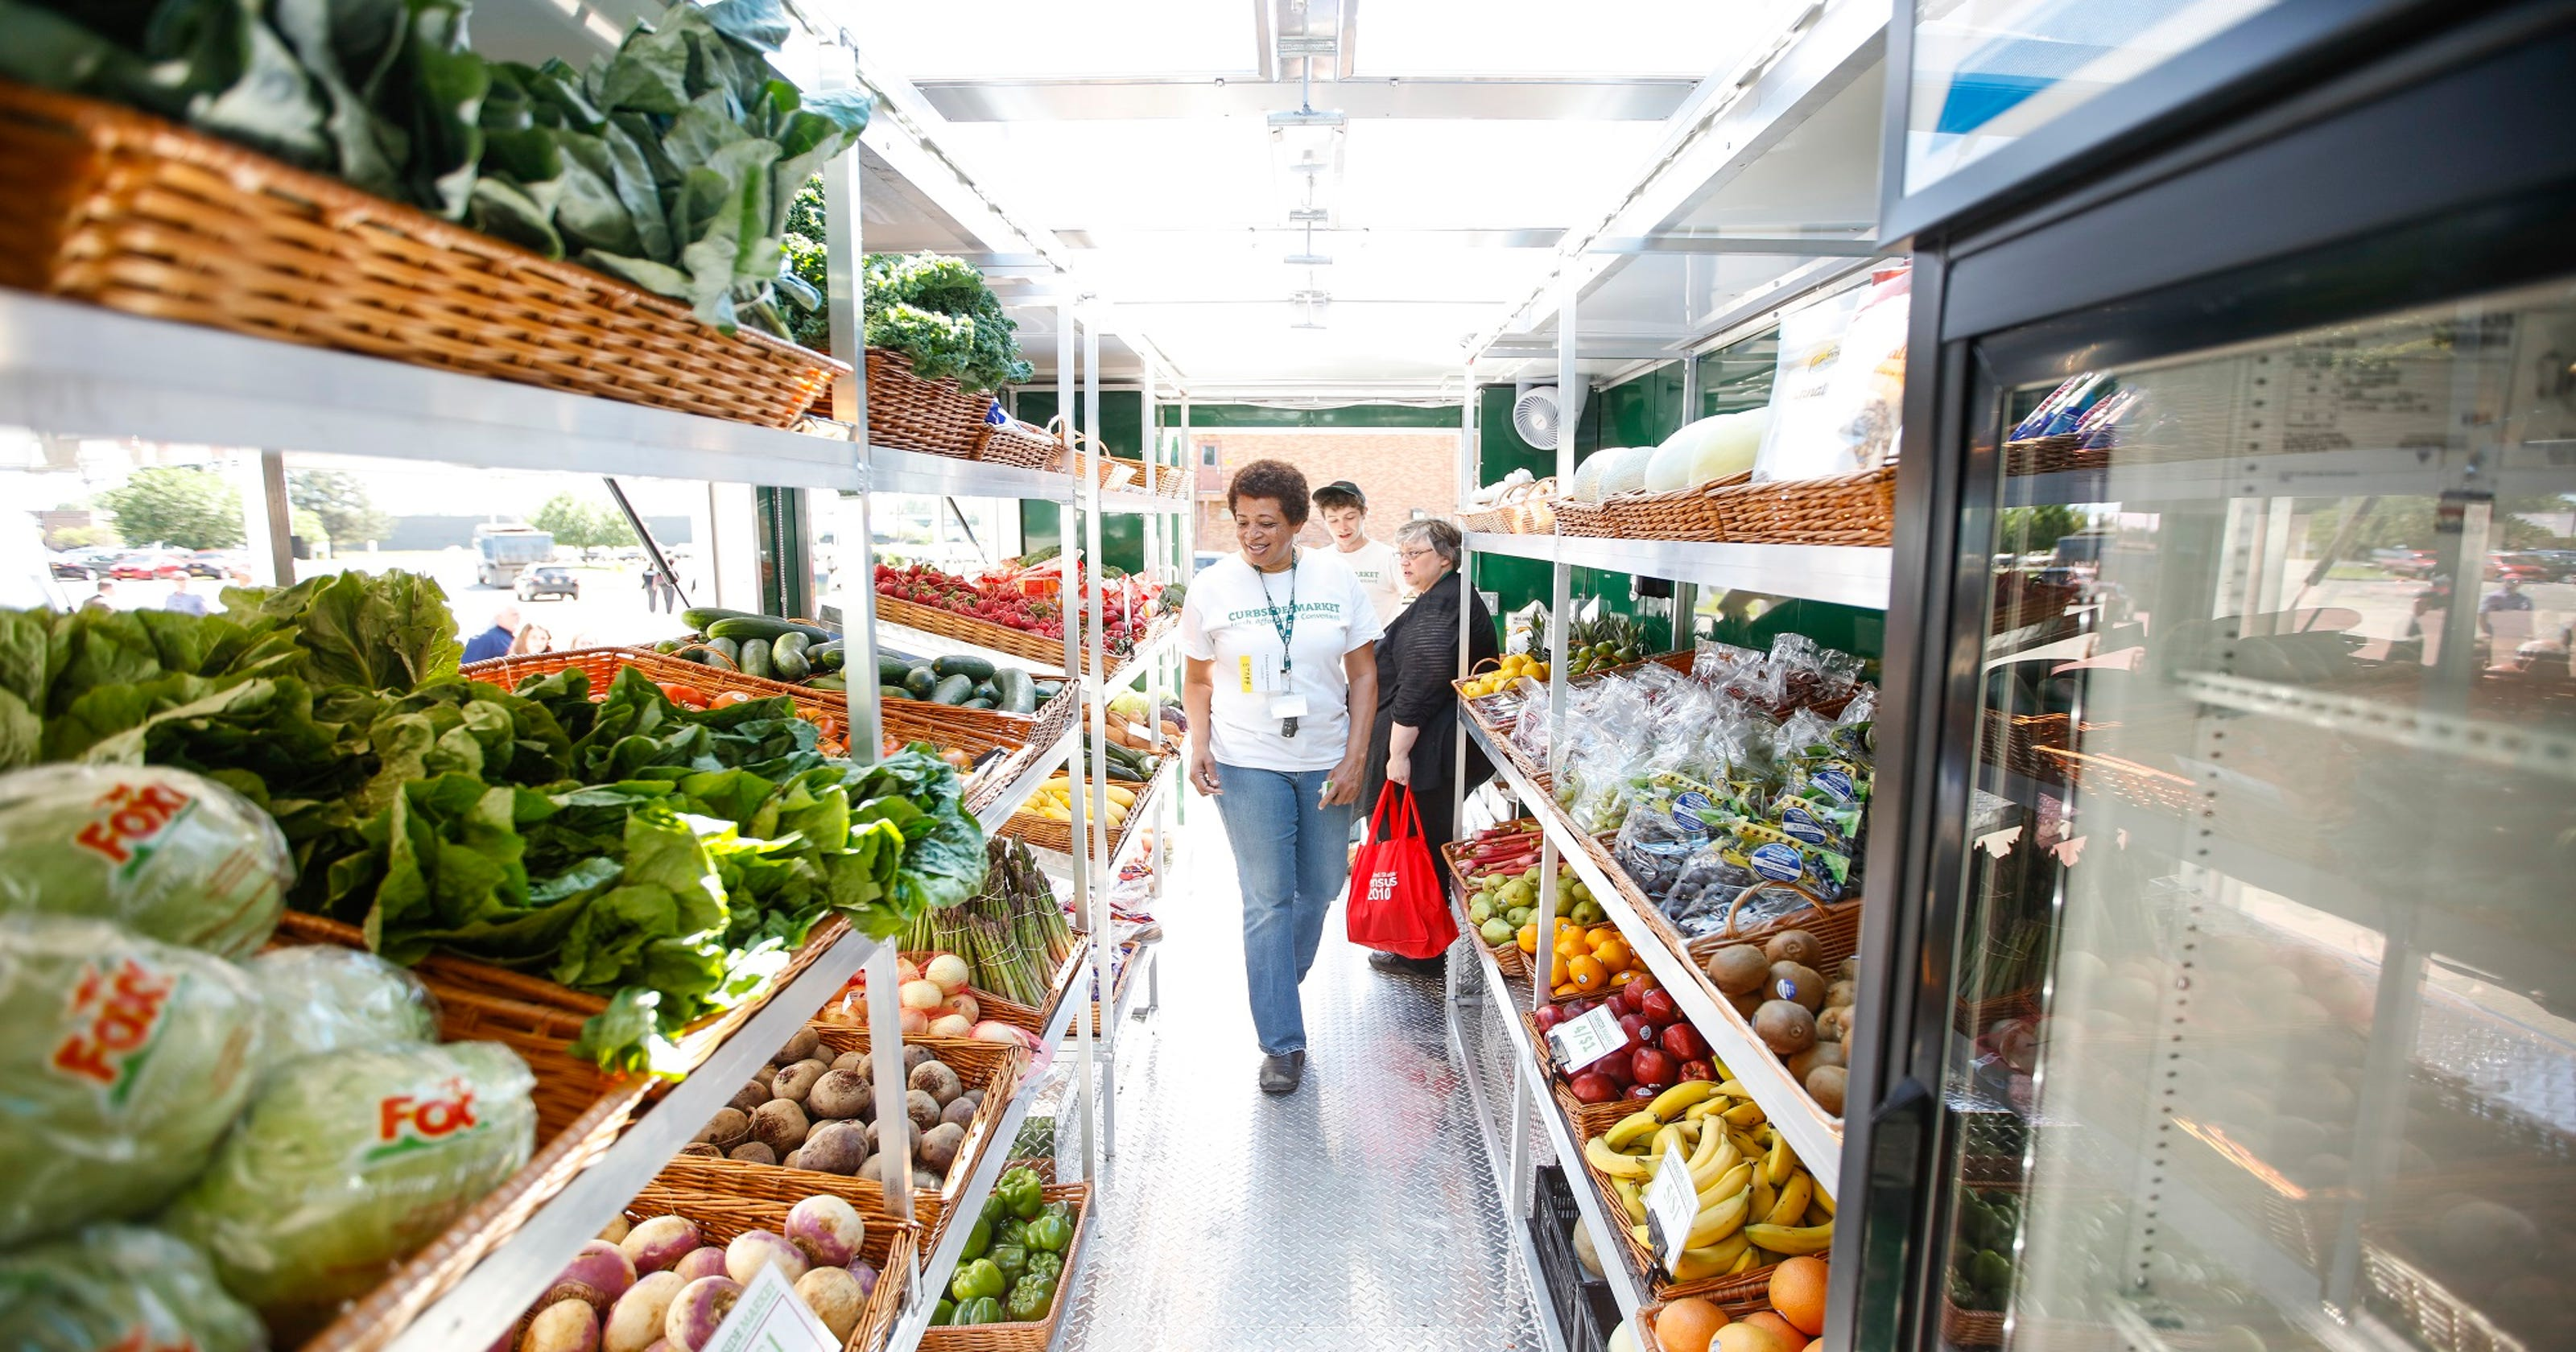 foodlink offers bridge to healthy foods in lowincome areas essay dearth of healthy food options a challenge for lowincome families